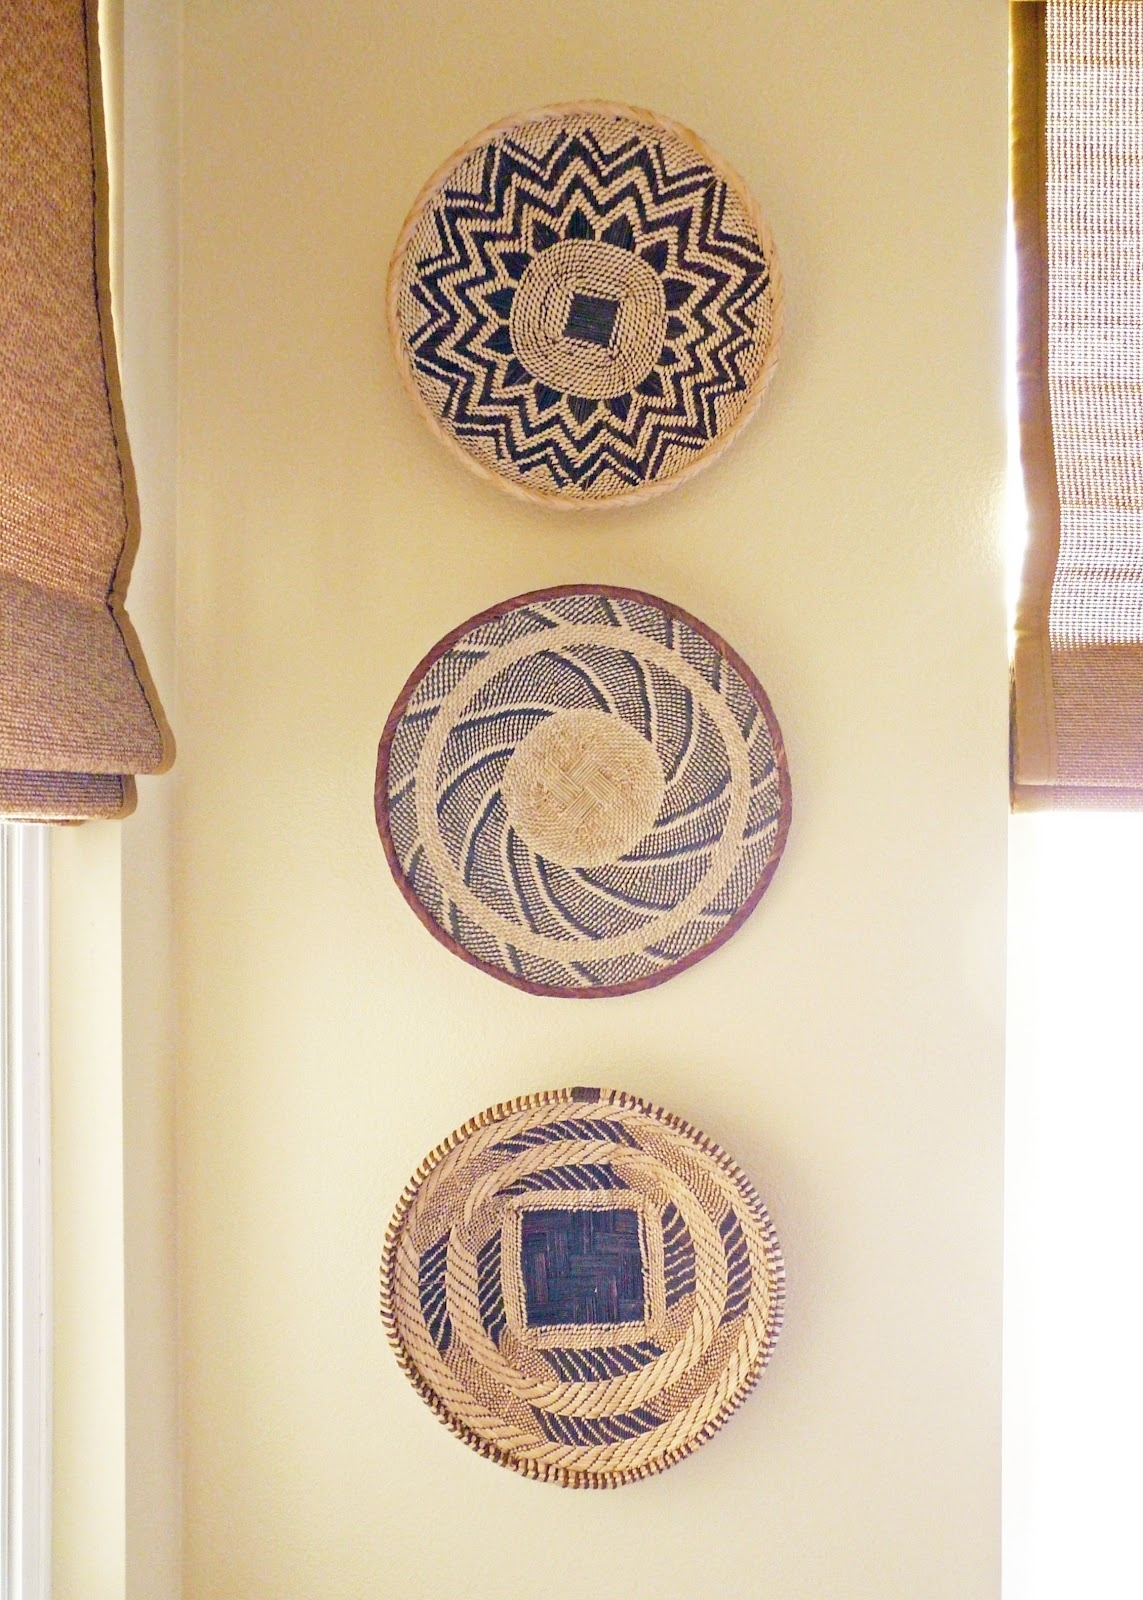 African Basket Wall Decor Newhairstylesformen2014com, Woven Basket Pertaining To Recent Woven Basket Wall Art (View 13 of 20)